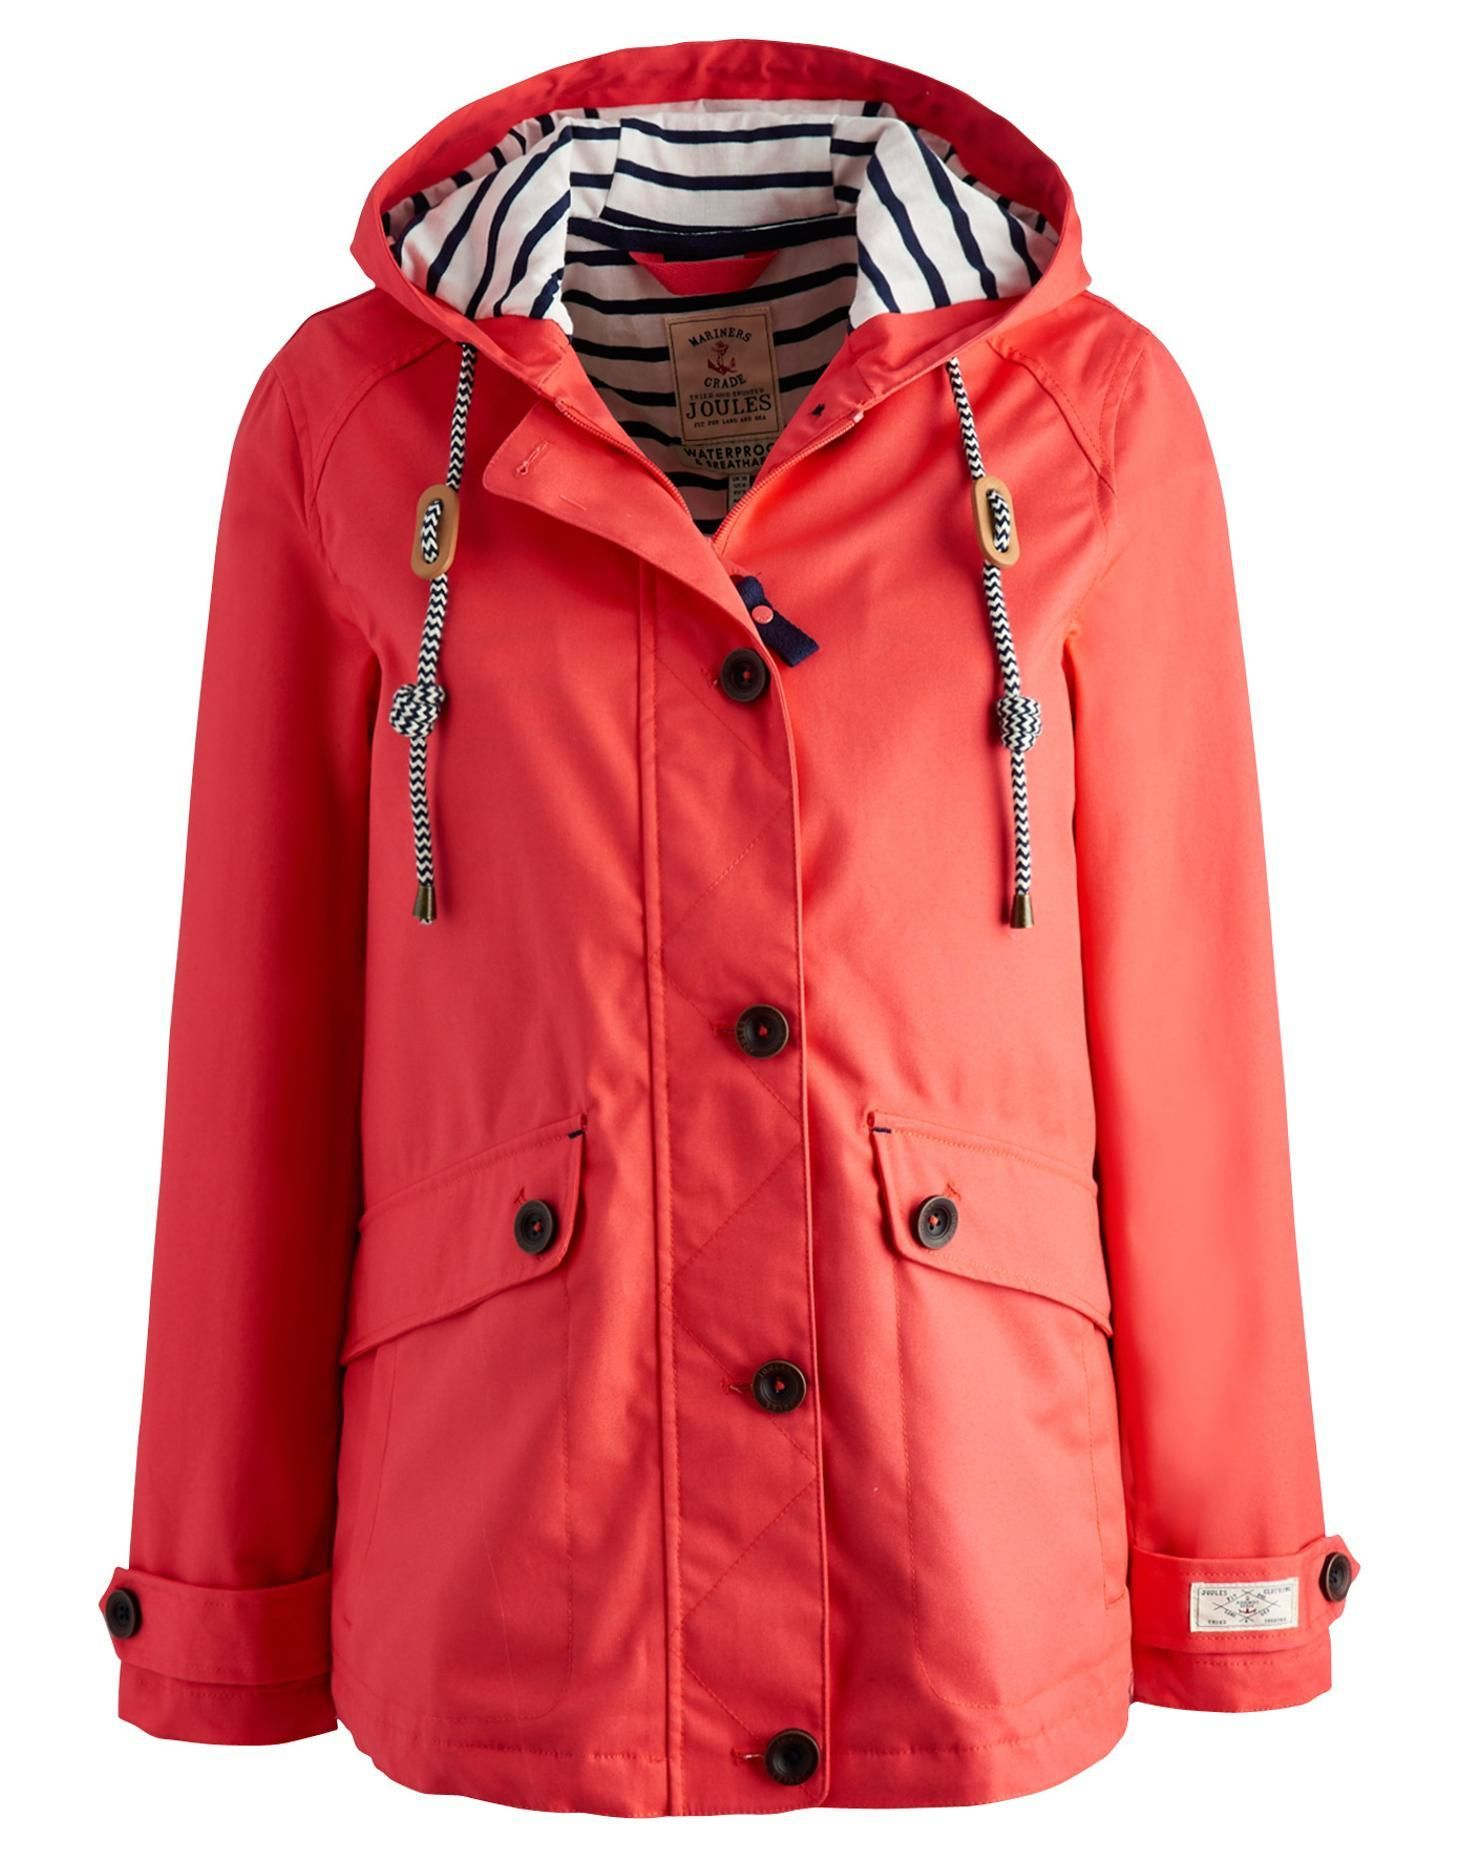 Bright Pink Coast Womens Waterproof Hooded Jacket | Joules UK ...